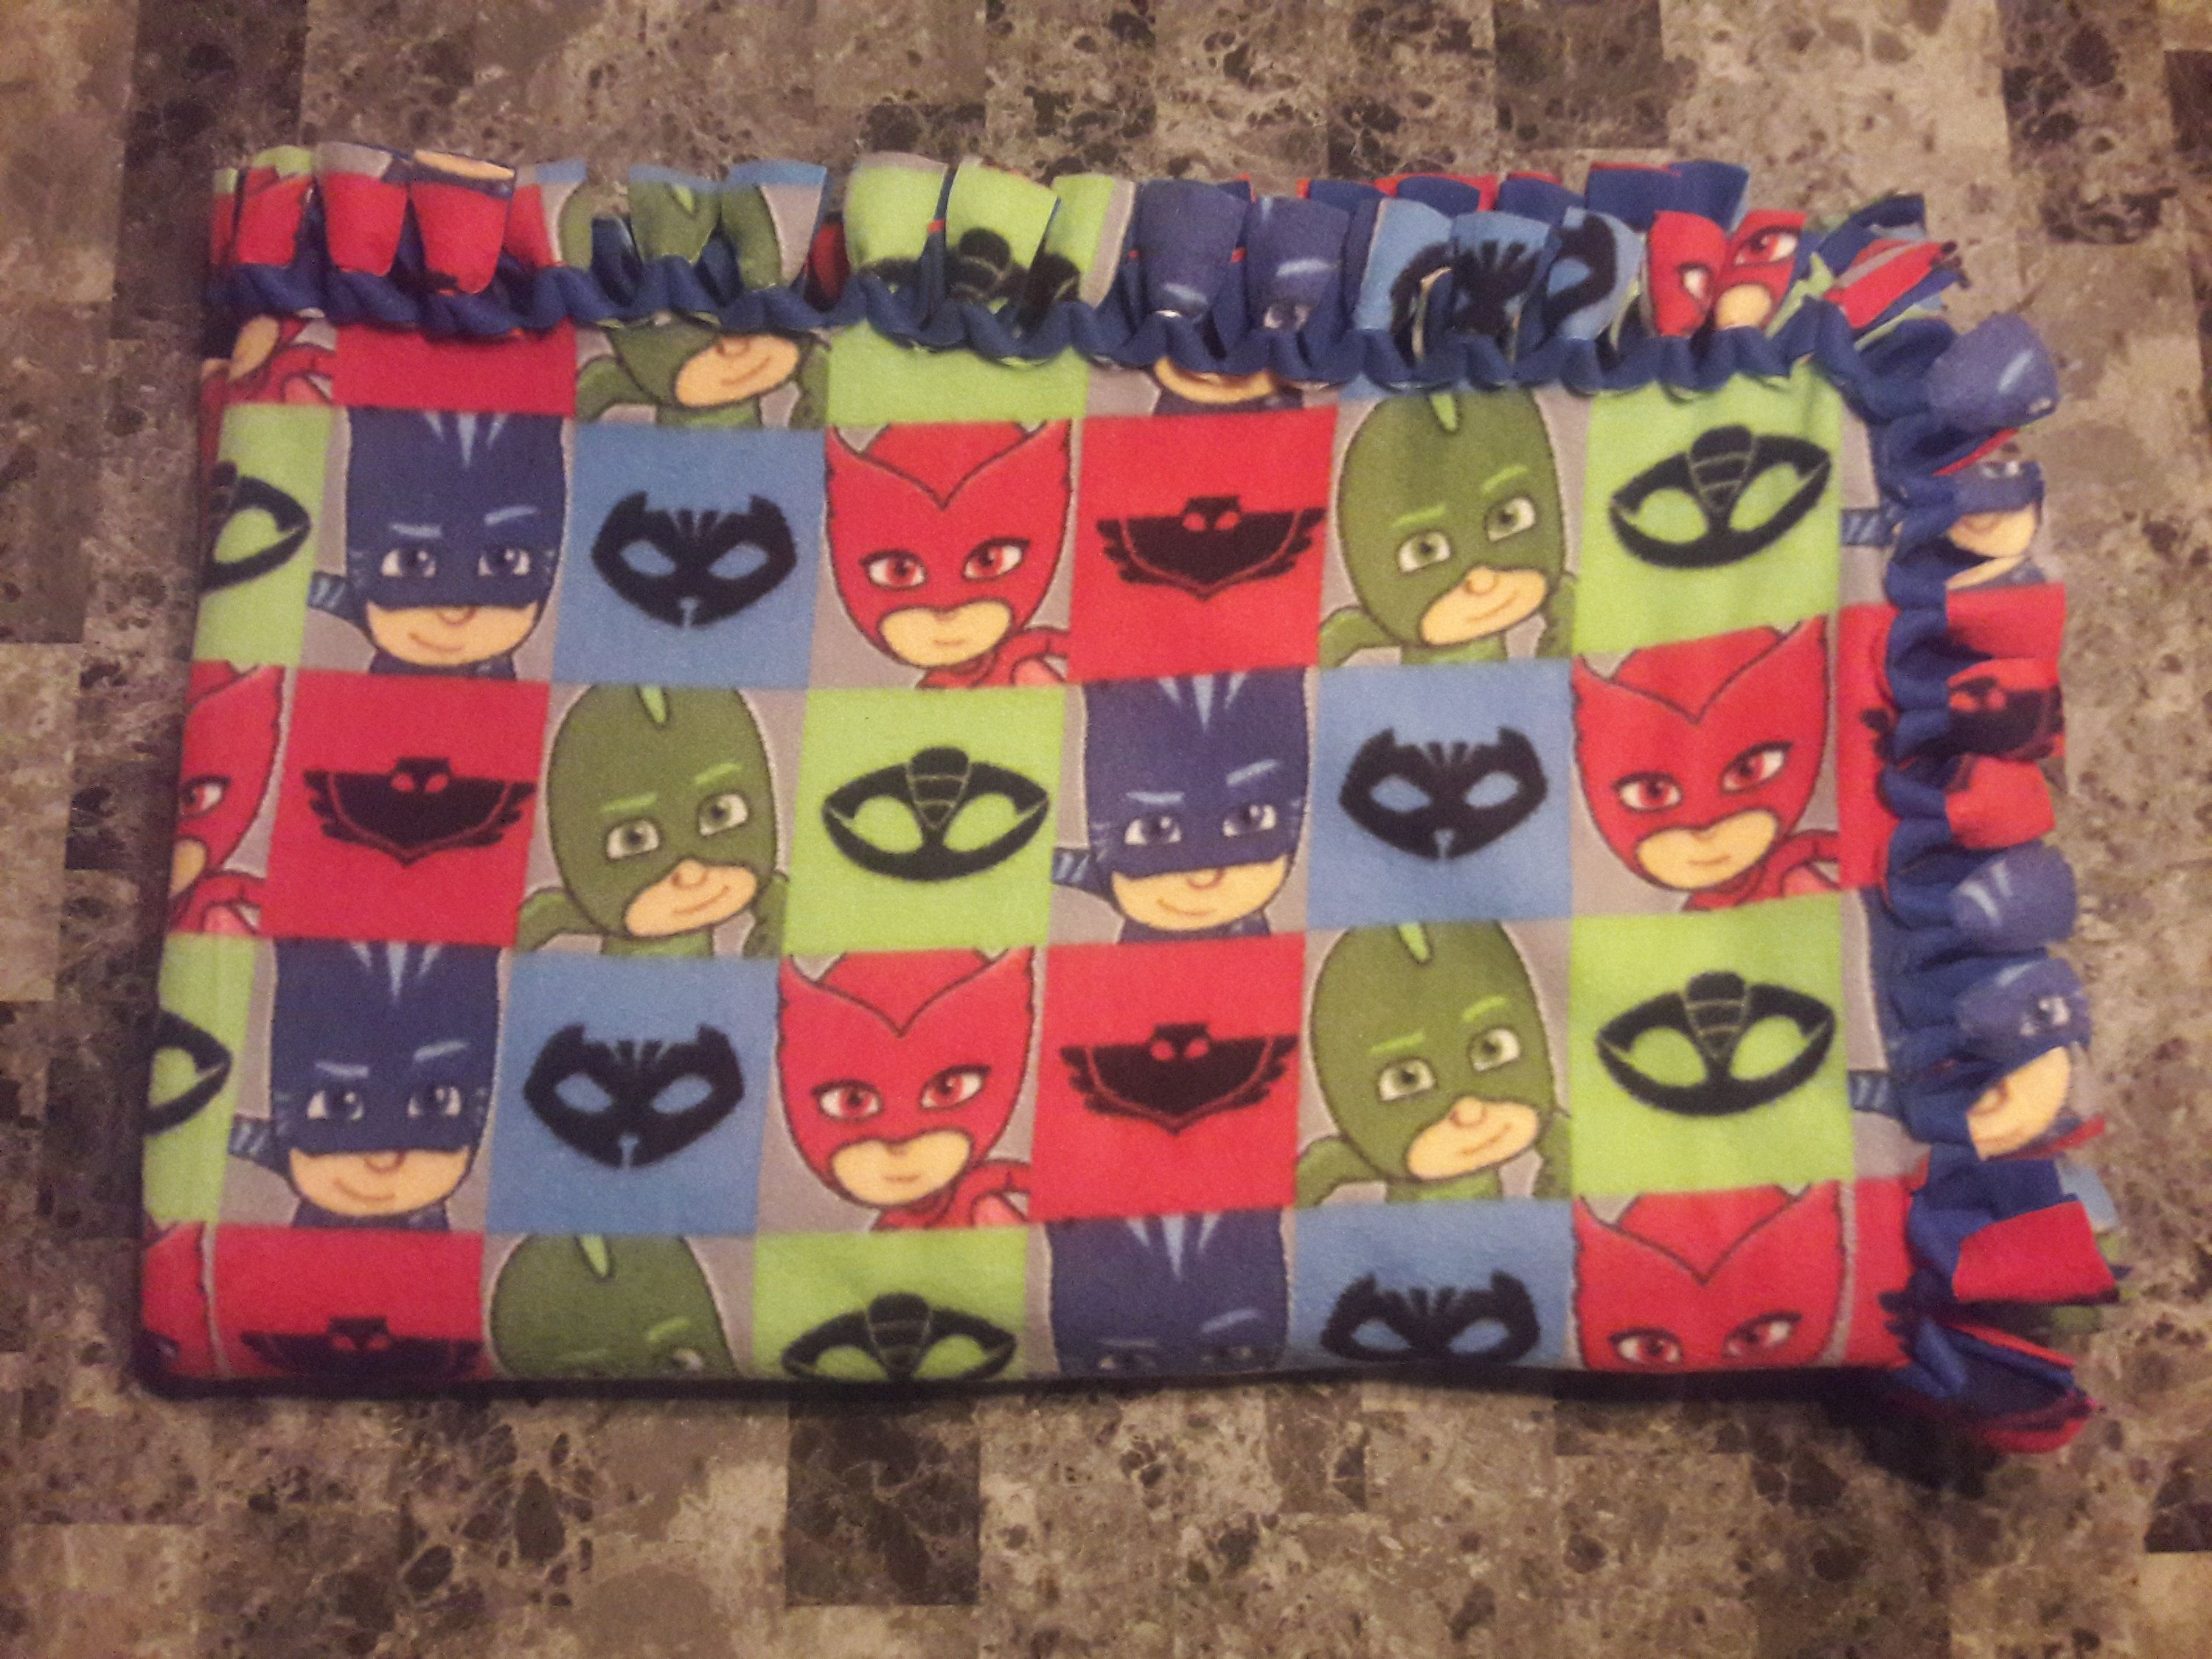 Pj masks nosew fleece throw blanket